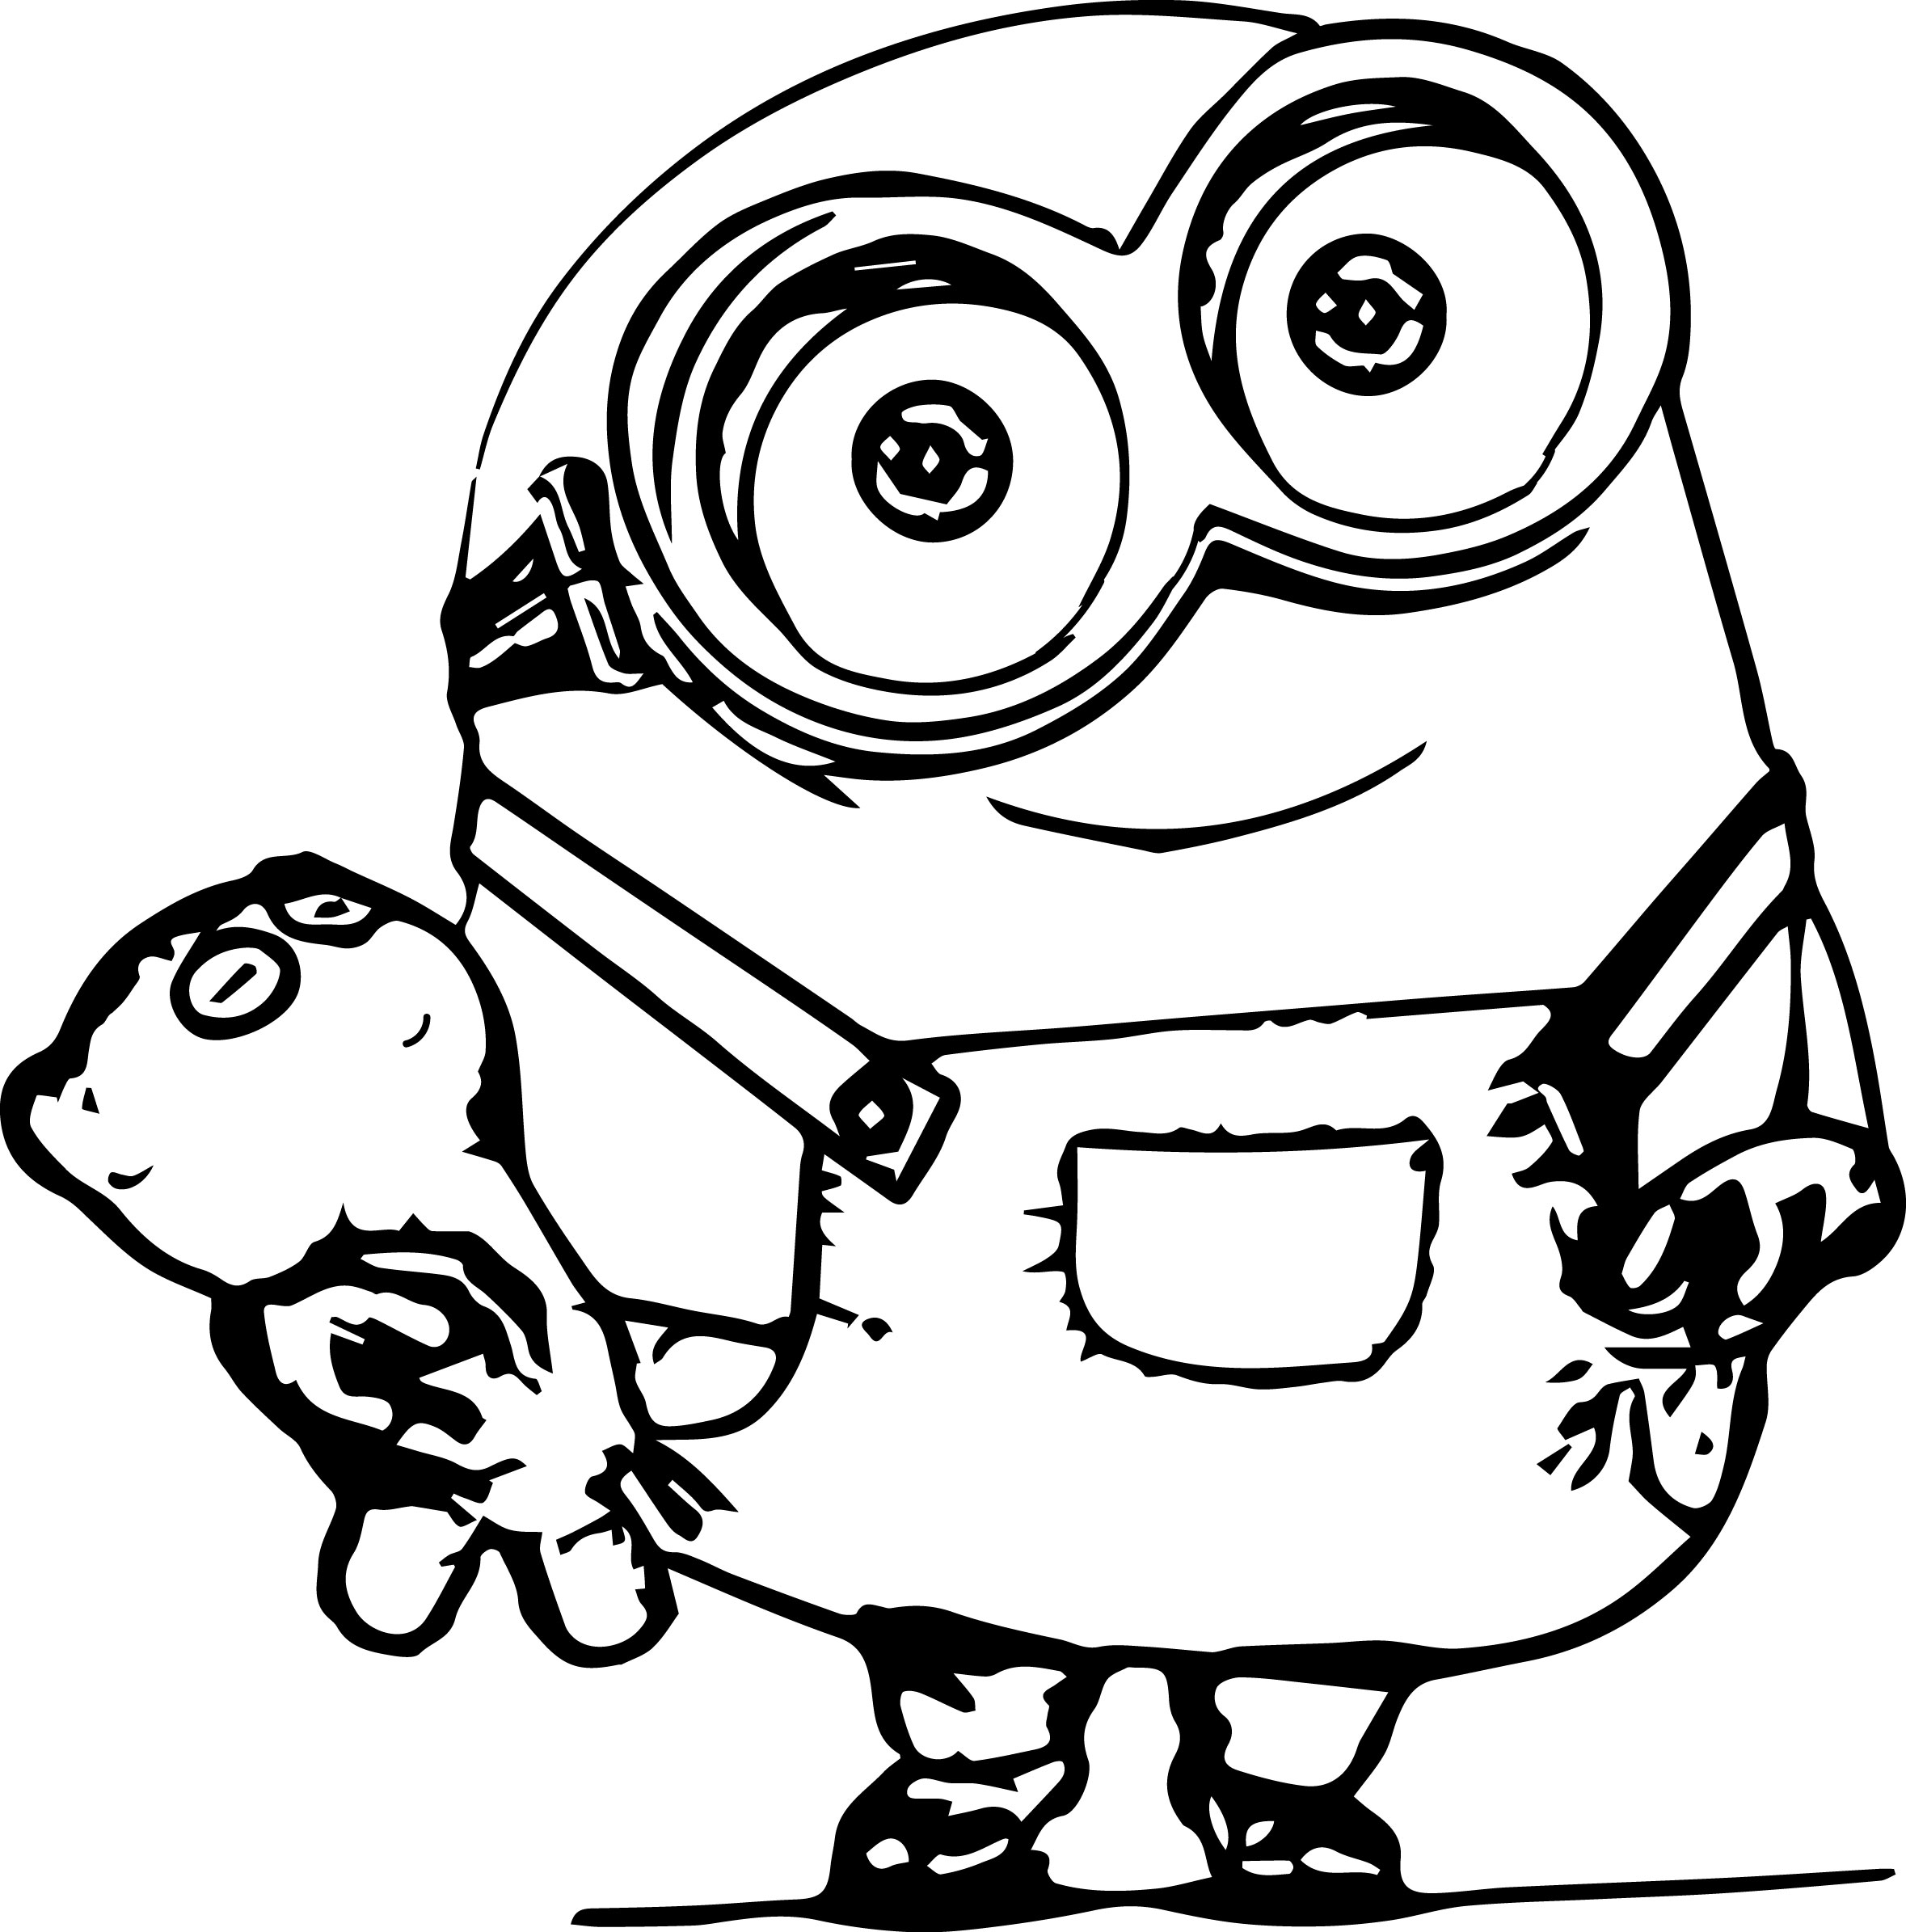 minion coloring page - Coliring Pages